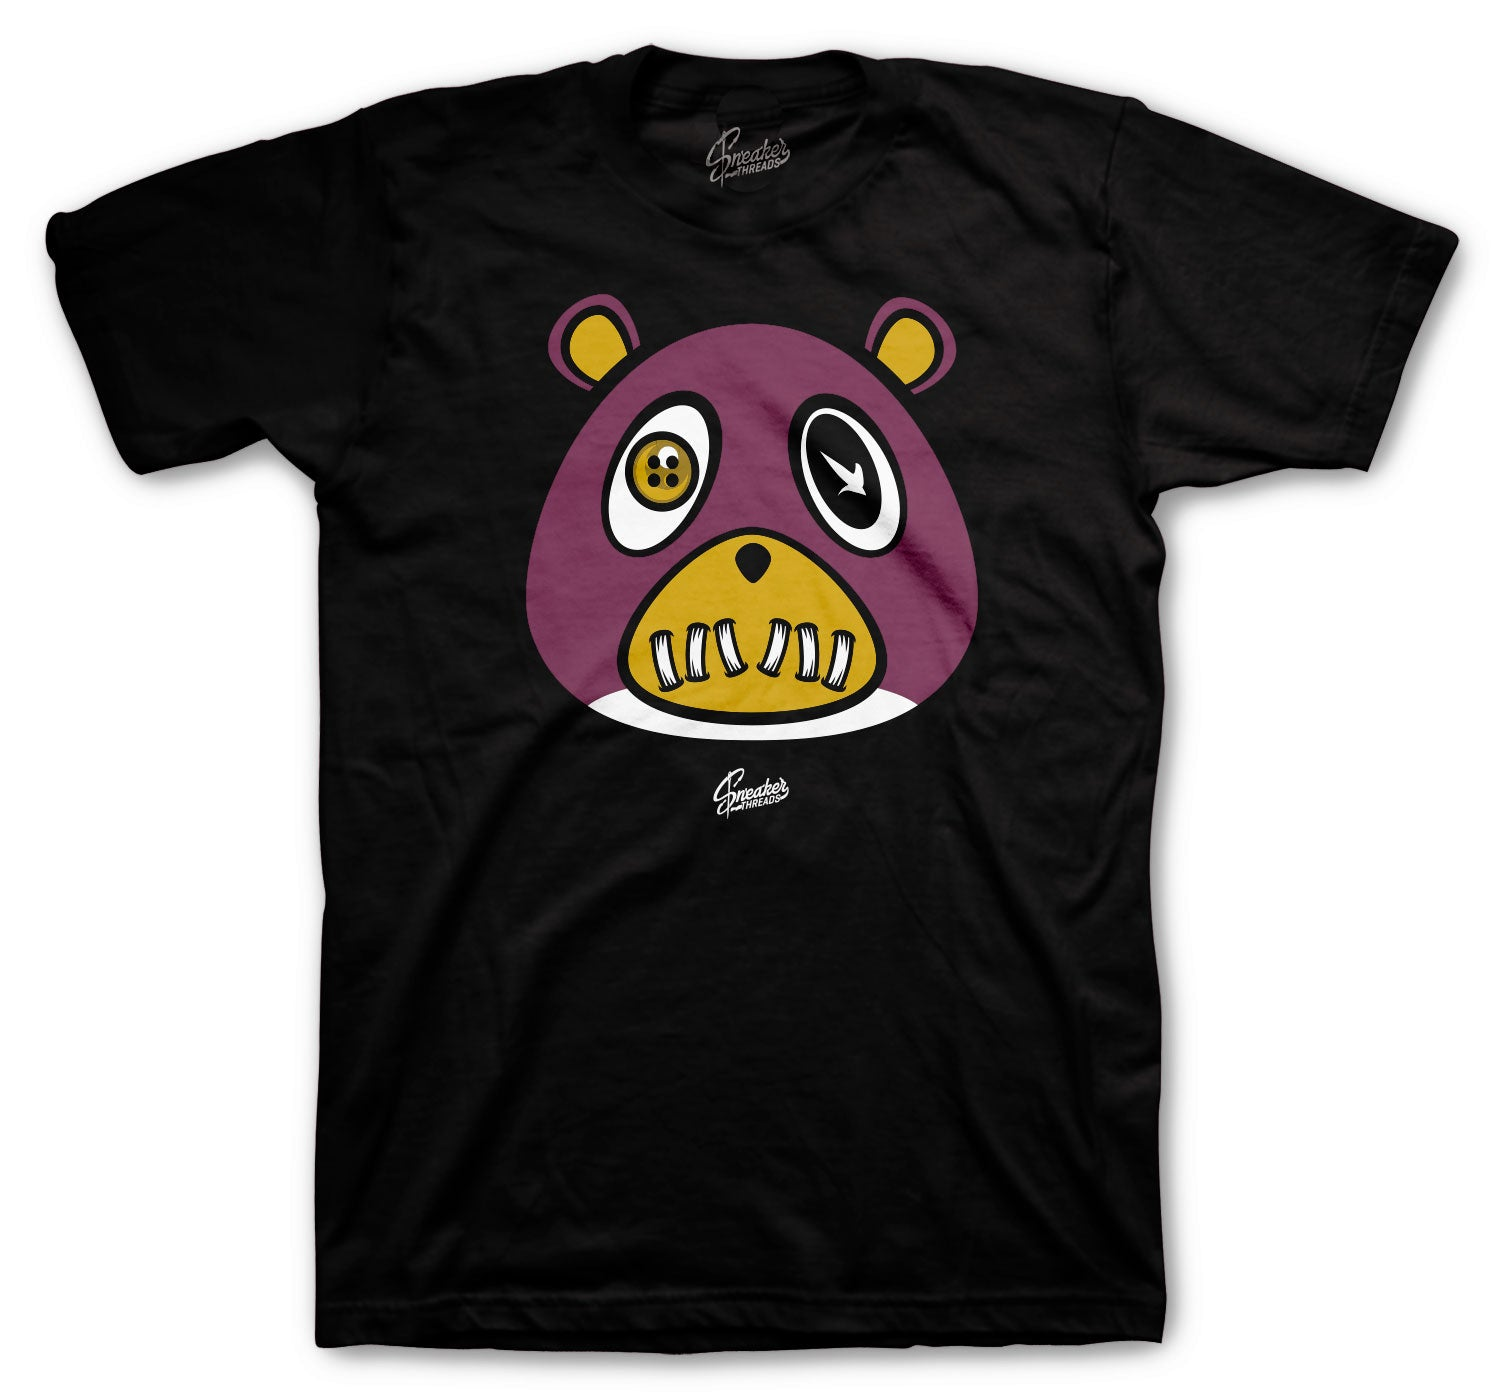 Jordan 6 Singles Day Shirt - ST Bear - Black